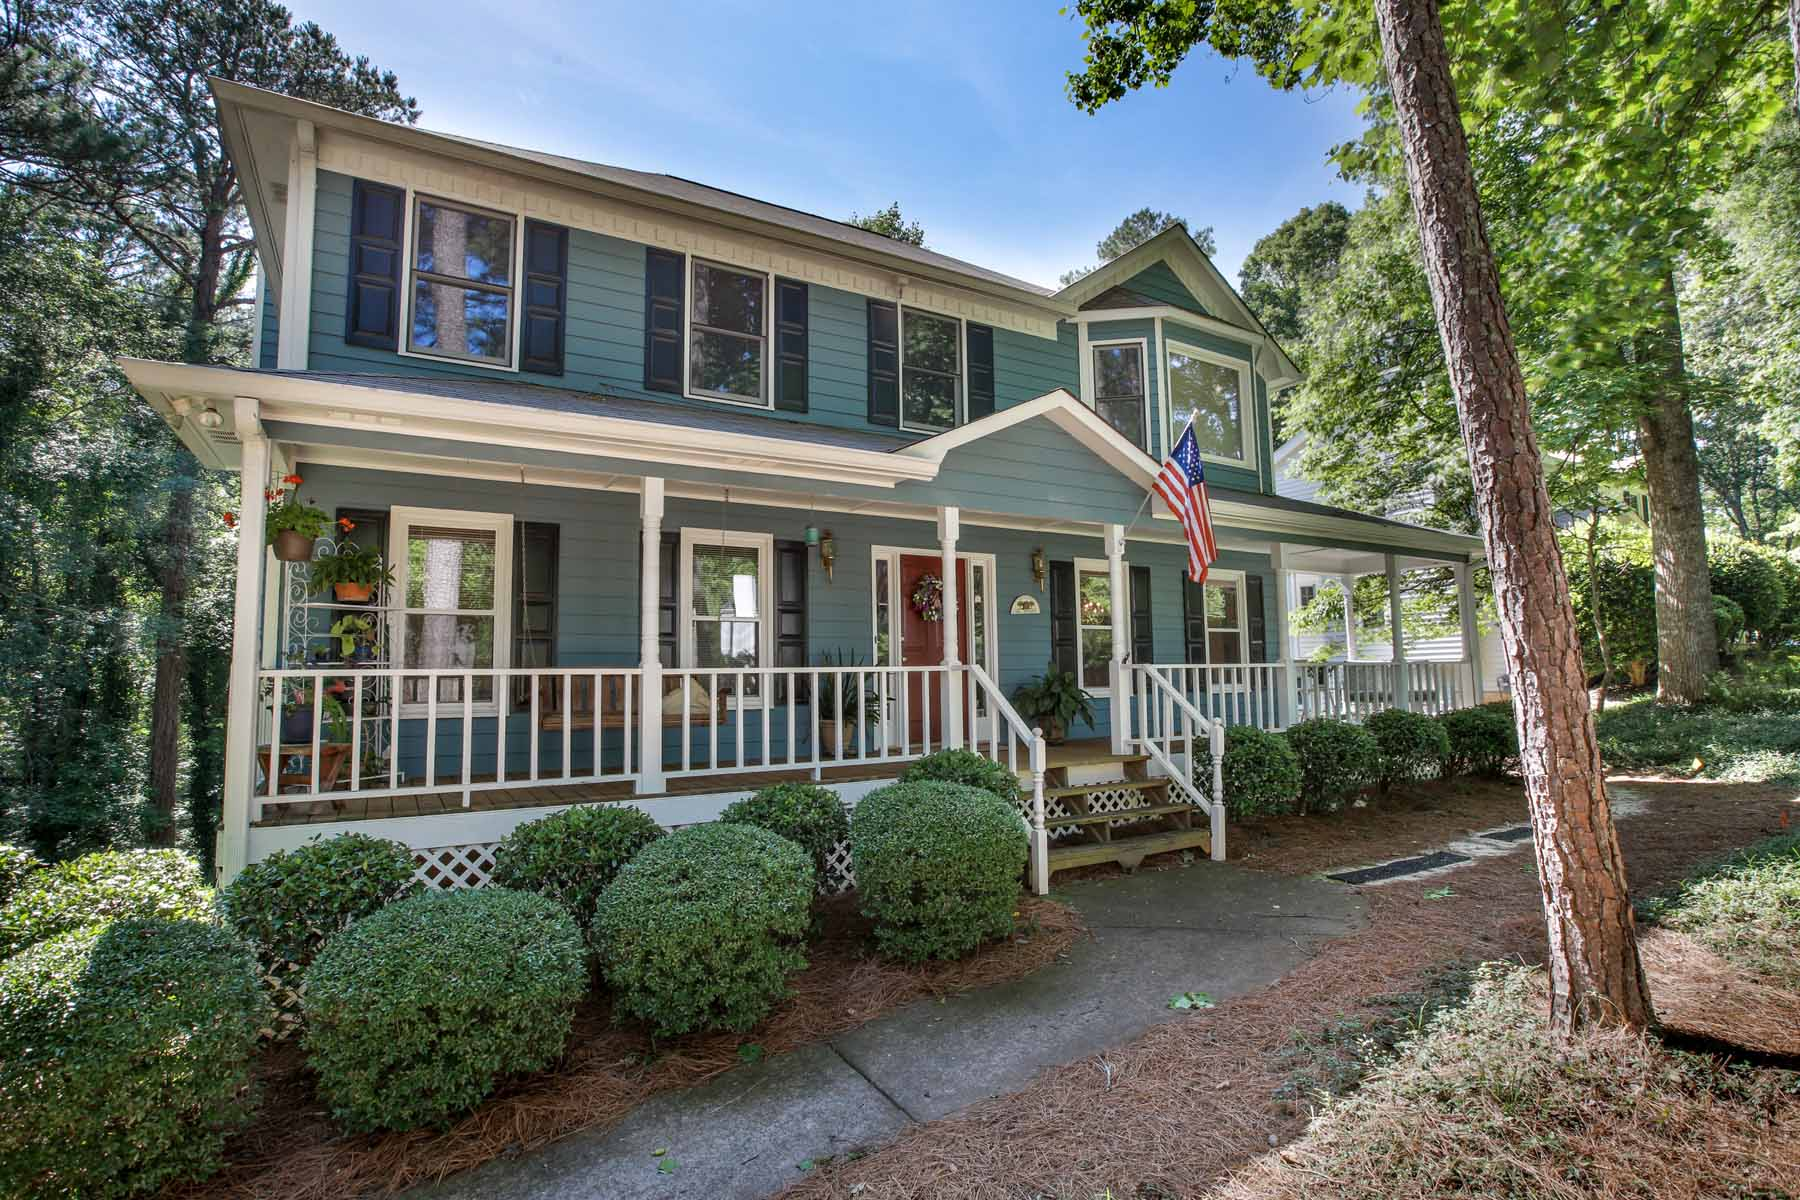 Casa Unifamiliar por un Venta en 1408 Silver Fox Run Woodstock, Georgia, 30188 Estados Unidos